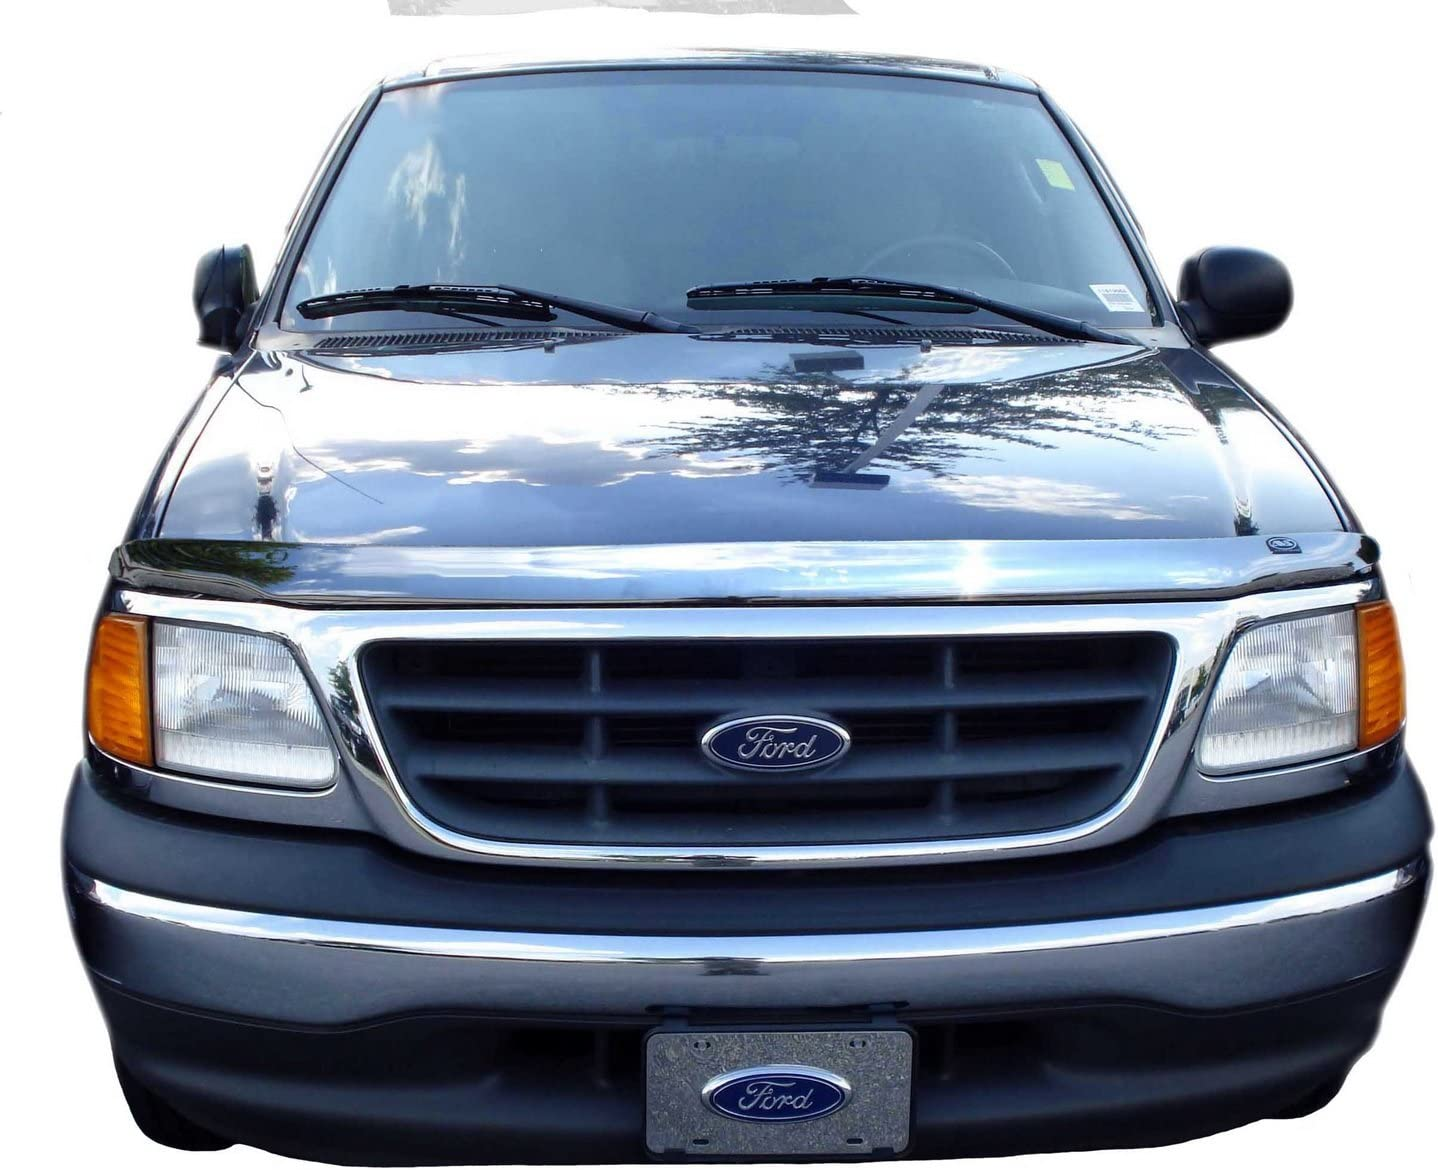 680513 AVS Bugflector Chrome Hood Protector Shield For 97-2002 Ford Expedition